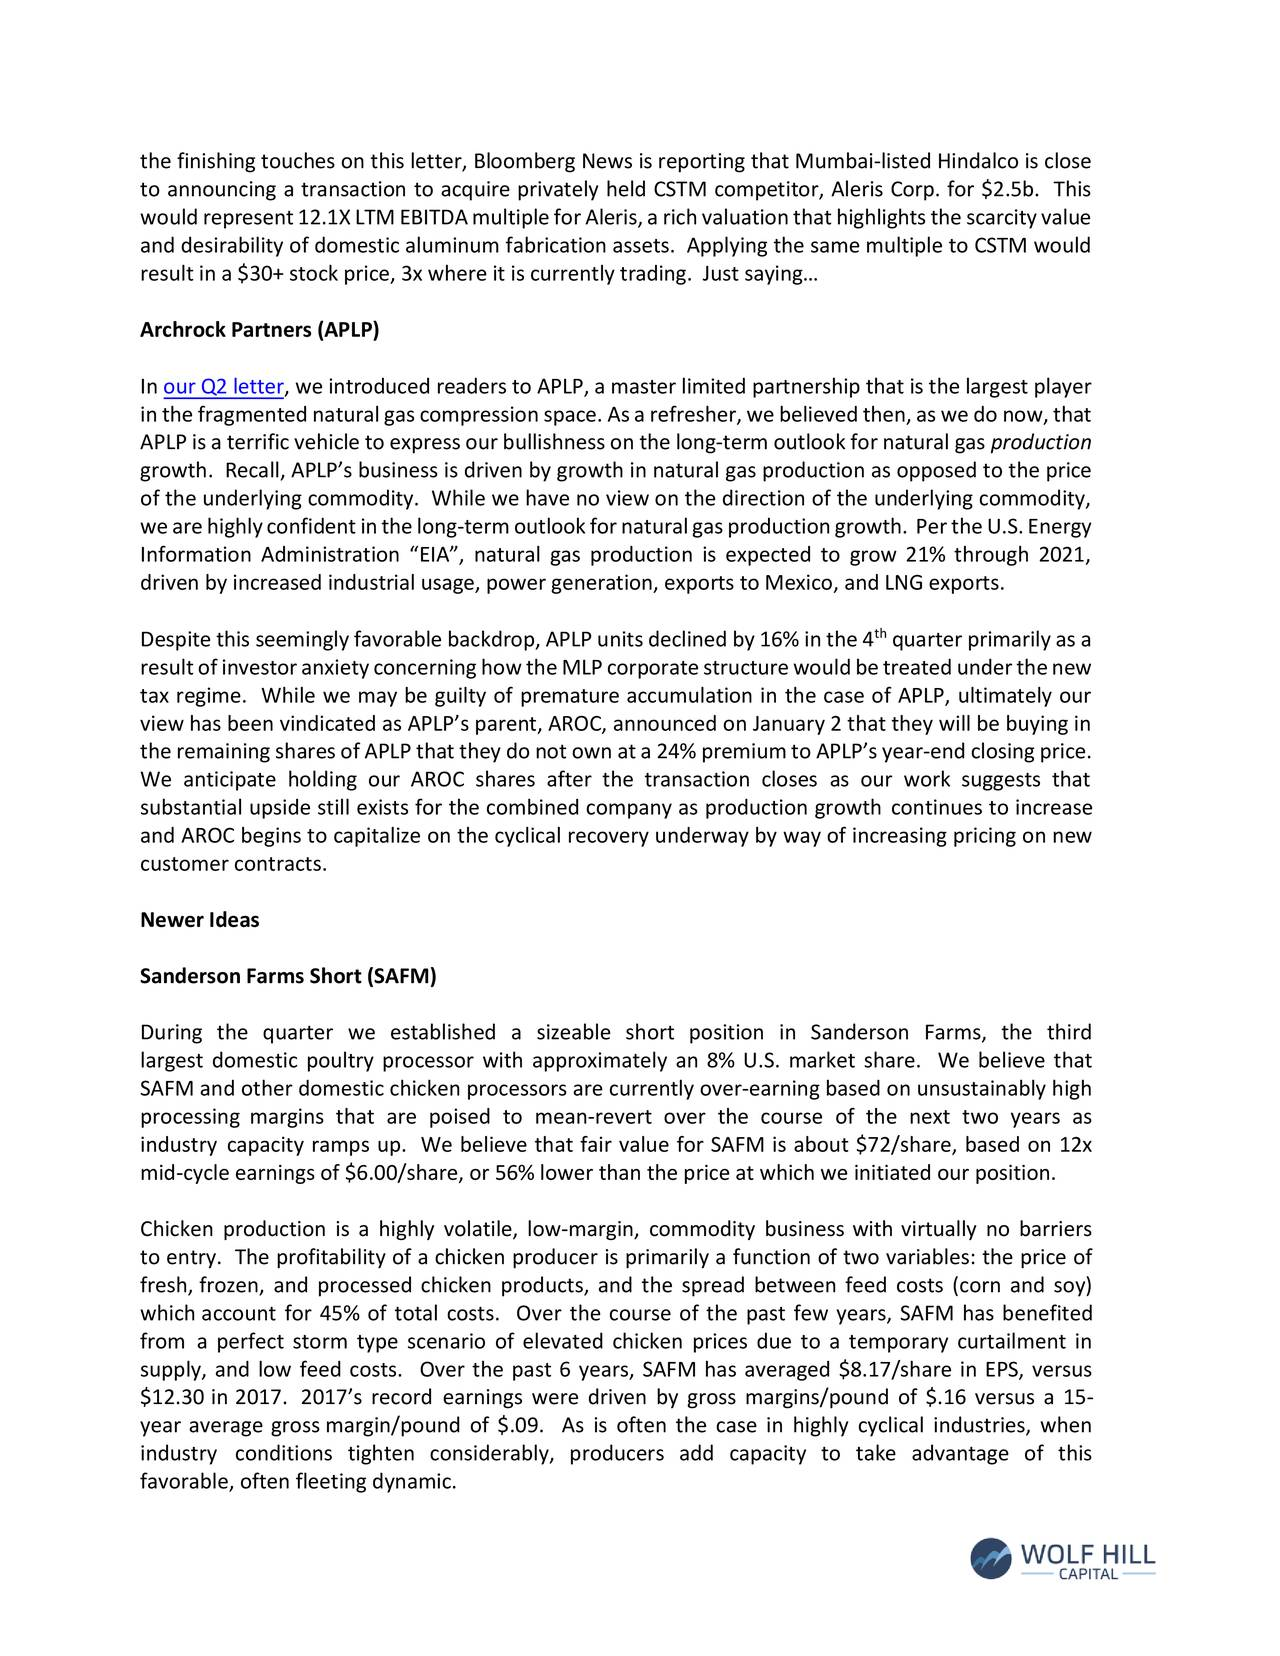 """to announcing a transaction to acquire privately held CSTM competitor, Aleris Corp. for $2.5b. This wouldrepresent12.1XLTMEBITDAmultipleforAleris,arichvaluationthathighlightsthescarcityvalue and desirability of domestic aluminum fabrication assets. Applying the same multiple to CSTM would result in a $30+ stock price, 3x where it is currently trading. Just saying… Archrock Partners (APLP) In our Q2 letter, we introduced readers to APLP, a master limited partnership that is the largest player inthefragmentednaturalgascompressionspace.Asarefresher,webelievedthen,aswedo now,that APLP is a terrific vehicle to express our bullishness on the long-term outlook for natural gas production growth. Recall, APLP's business is driven by growth in natural gas production as opposed to the price of the underlying commodity. While we have no view on the direction of the underlying commodity, wearehighlyconfidentinthelong-termoutlookfornaturalgasproductiongrowth. PertheU.S.Energy Information Administration """"EIA"""", natural gas production is expected to grow 21% through 2021, driven by increased industrial usage, power generation, exports to Mexico, and LNG exports. Despite this seemingly favorable backdrop, APLP unitsdeclined by 16% in the 4 quarter primarily as a resultofinvestoranxietyconcerninghowtheMLPcorporatestructurewouldbetreatedunderthenew tax regime. While we may be guilty of premature accumulation in the case of APLP, ultimately our view has been vindicated as APLP's parent, AROC, announced on January 2 that they will be buying in the remaining sharesof APLP that they do not own ata 24% premium to APLP'syear-end closing price. We anticipate holding our AROC shares after the transaction closes as our work suggests that substantial upside still exists for the combined company as production growth continues to increase and AROC begins to capitalize on the cyclical recovery underway by way of increasing pricing on new customer contracts. Newer Ideas Sanderson Farms Short (SAFM) """